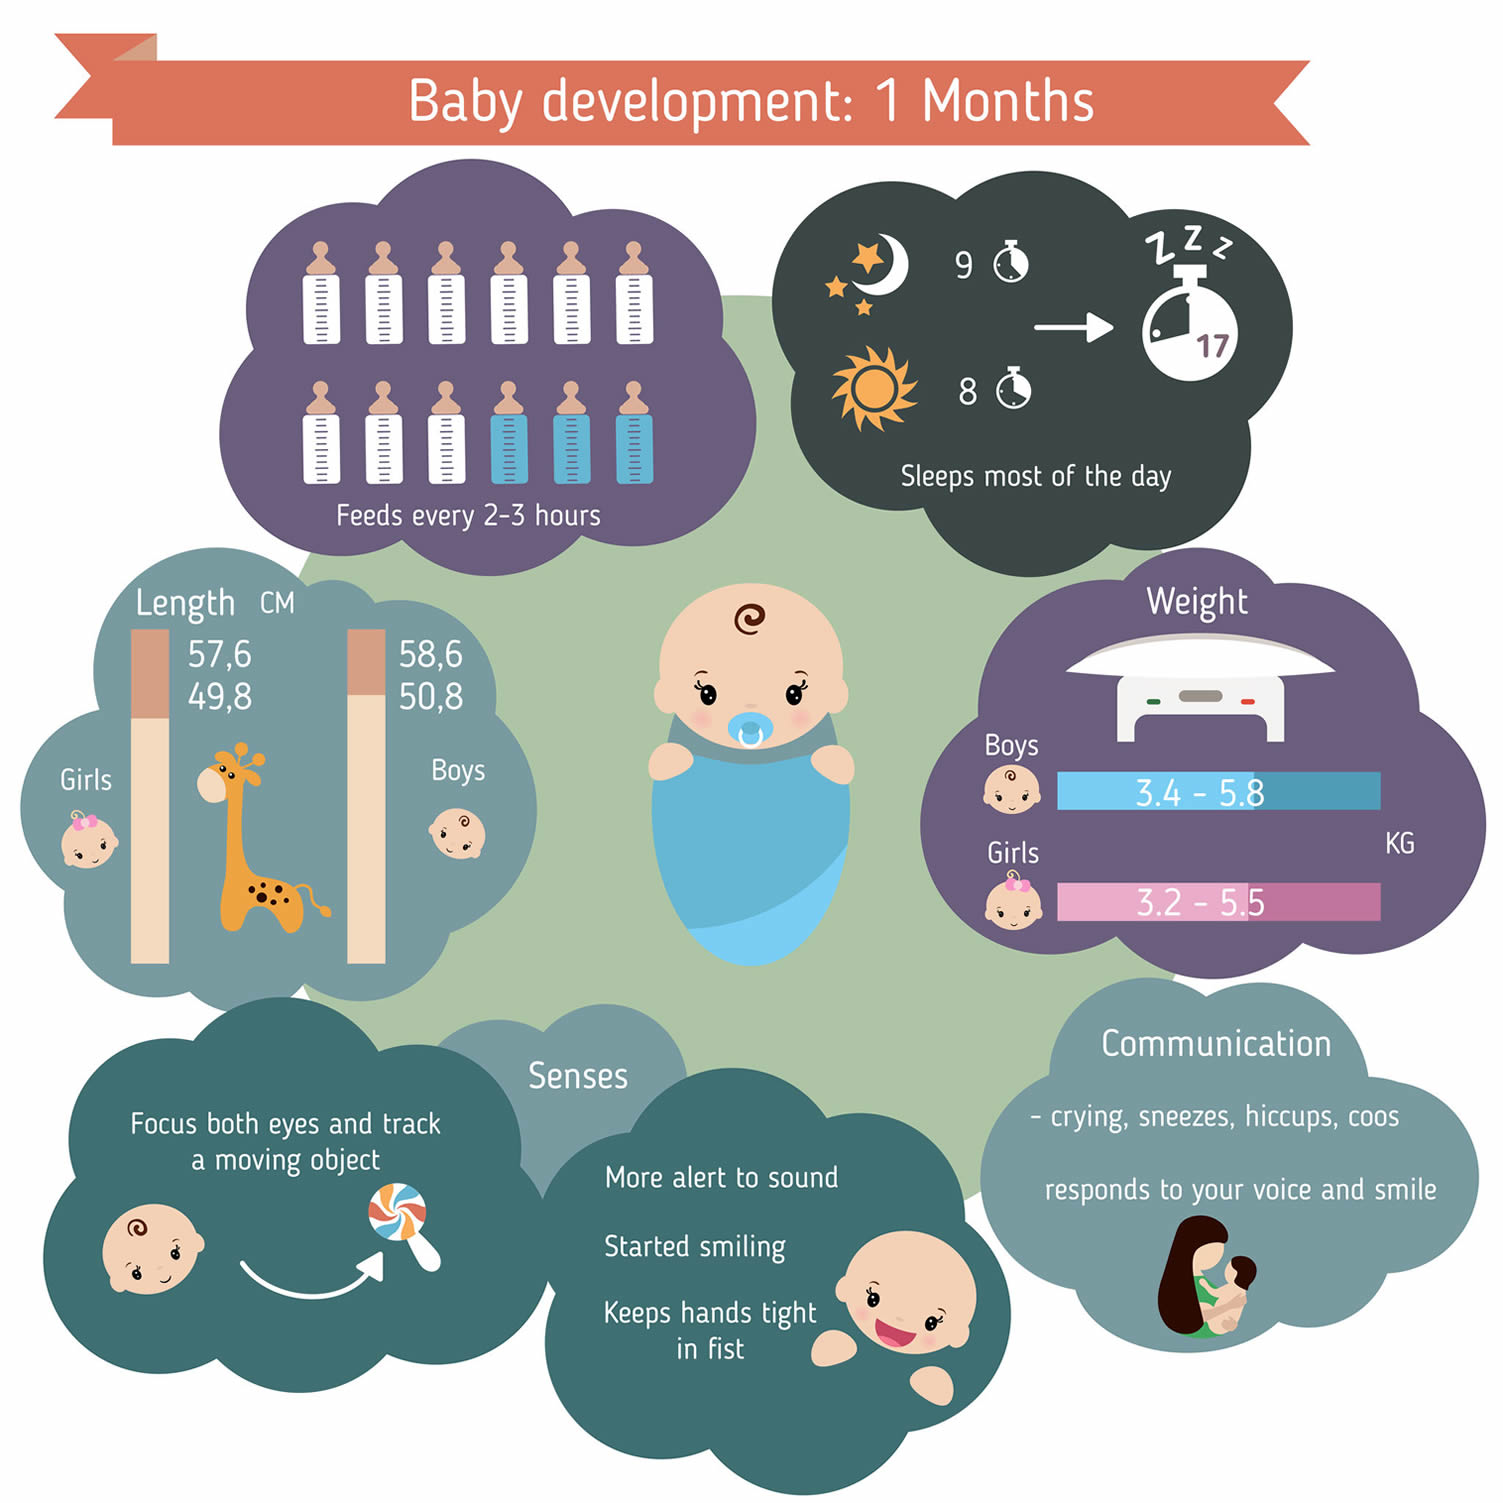 1 month infant care guide